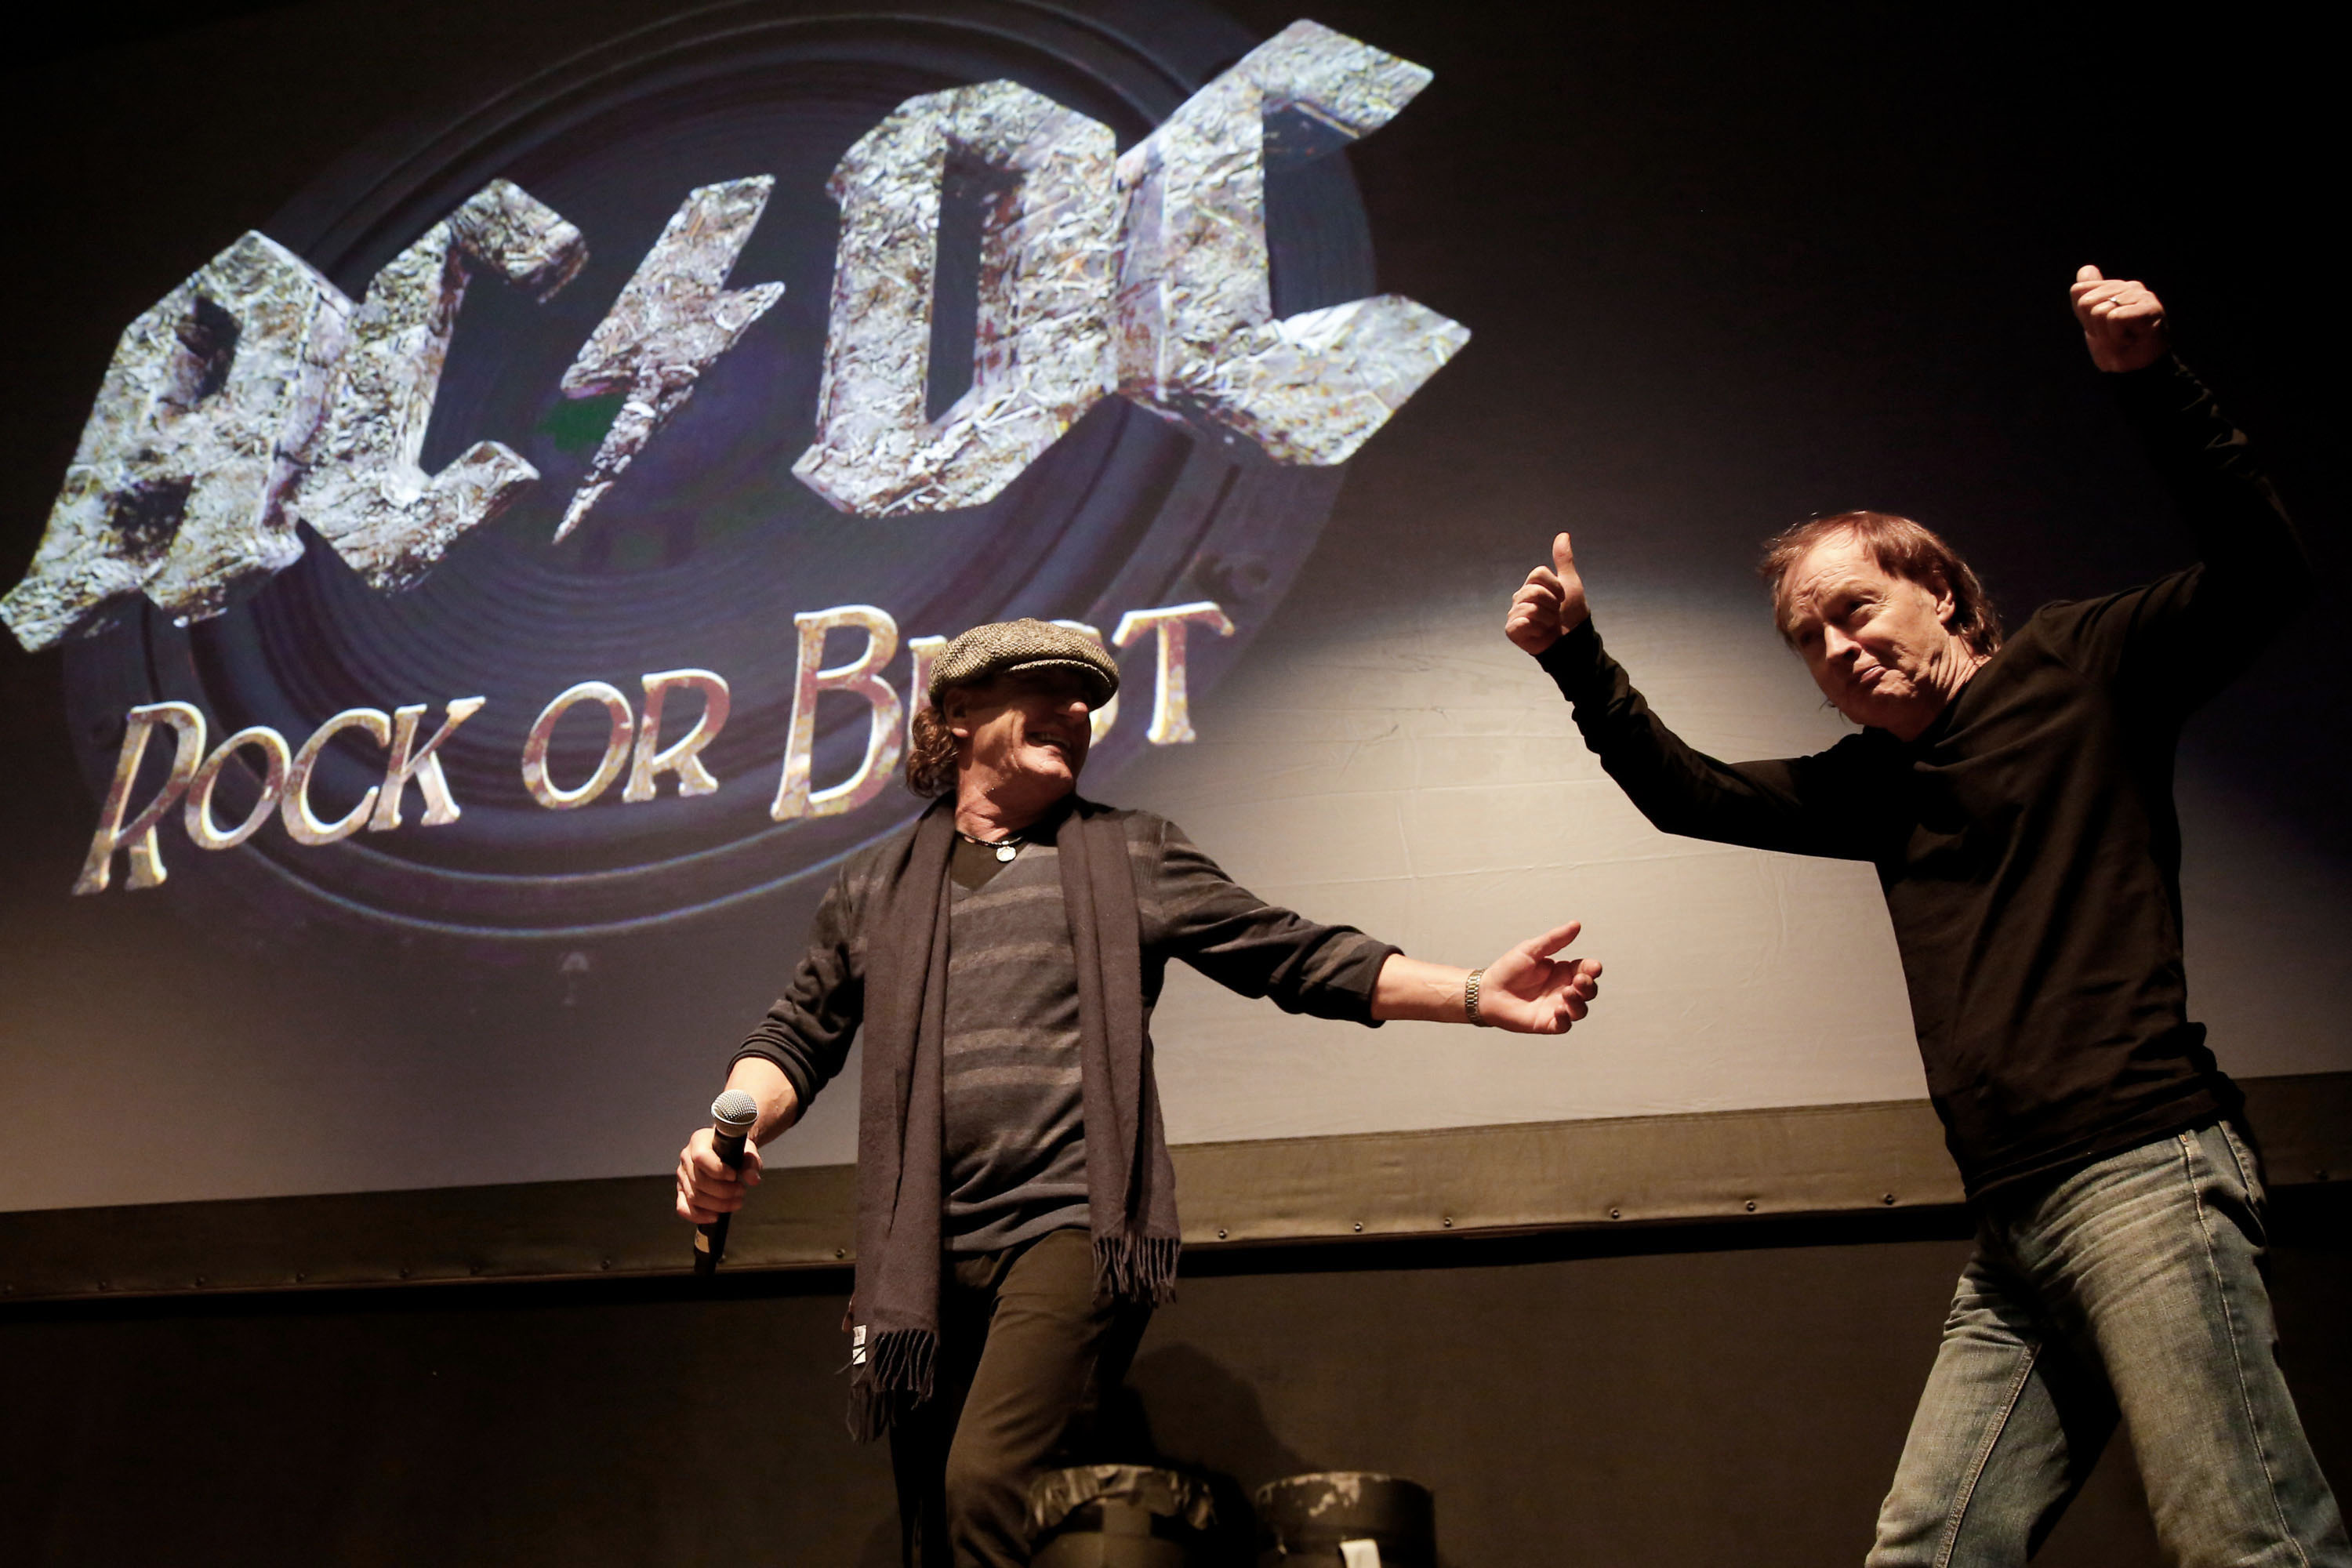 NEW YORK, NY - NOVEMBER 18:  (L-R) Singer Brian Johnson and guitarist Angus Young of the band AC/DC attend the AC/DC 'Rock or